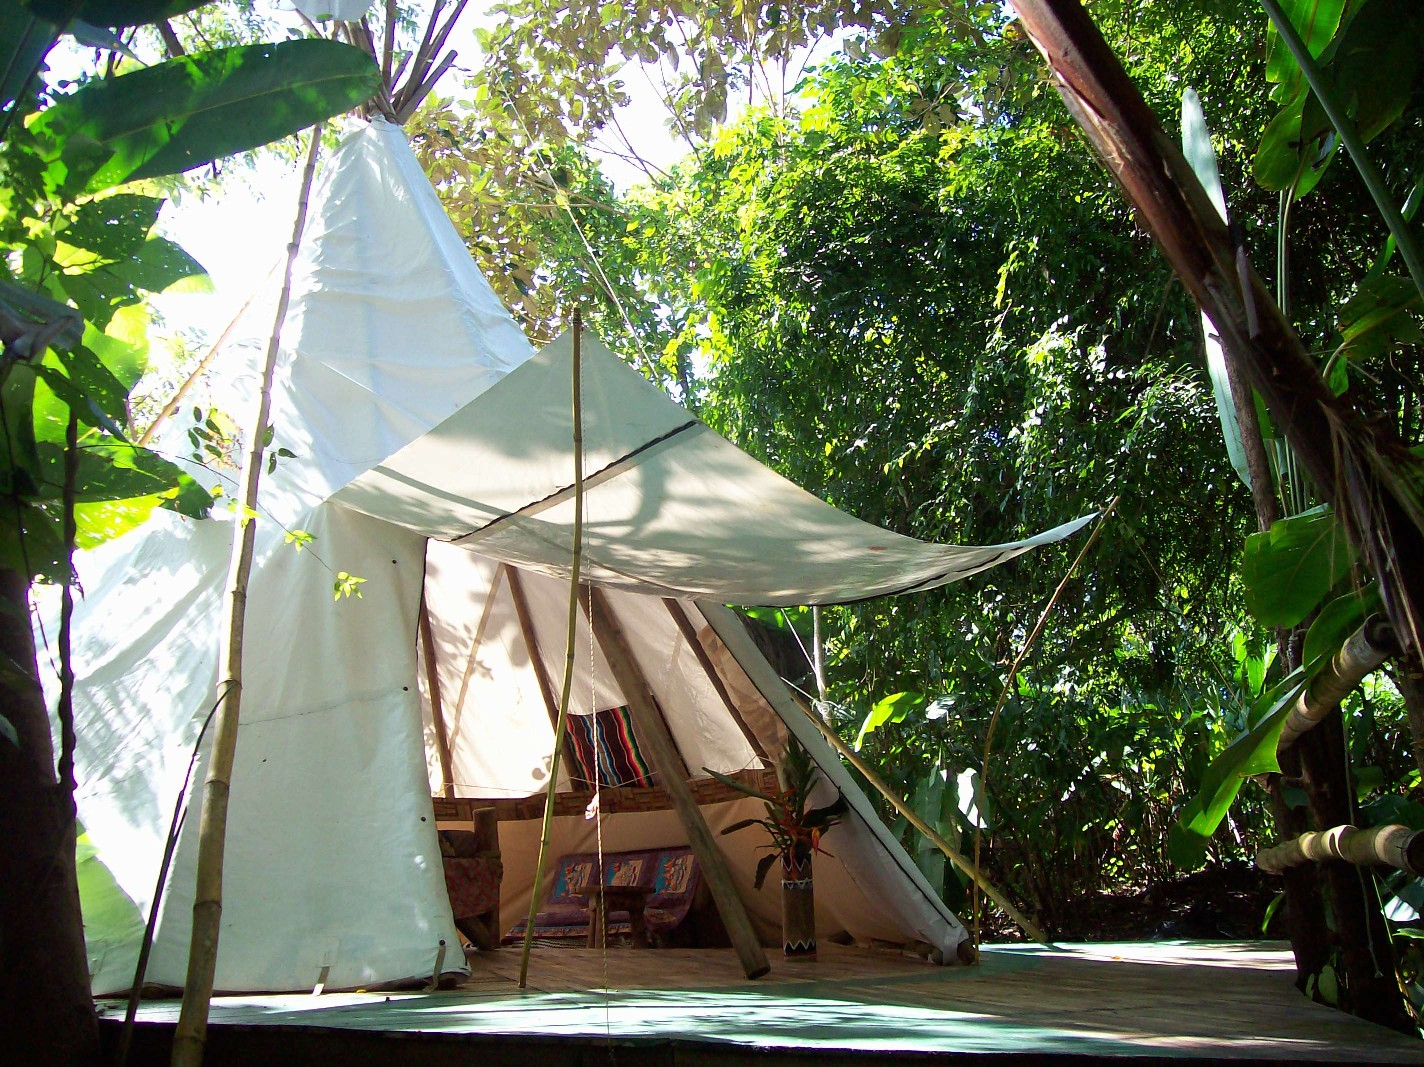 A night in a jungle teepee - a childhood dream come true.